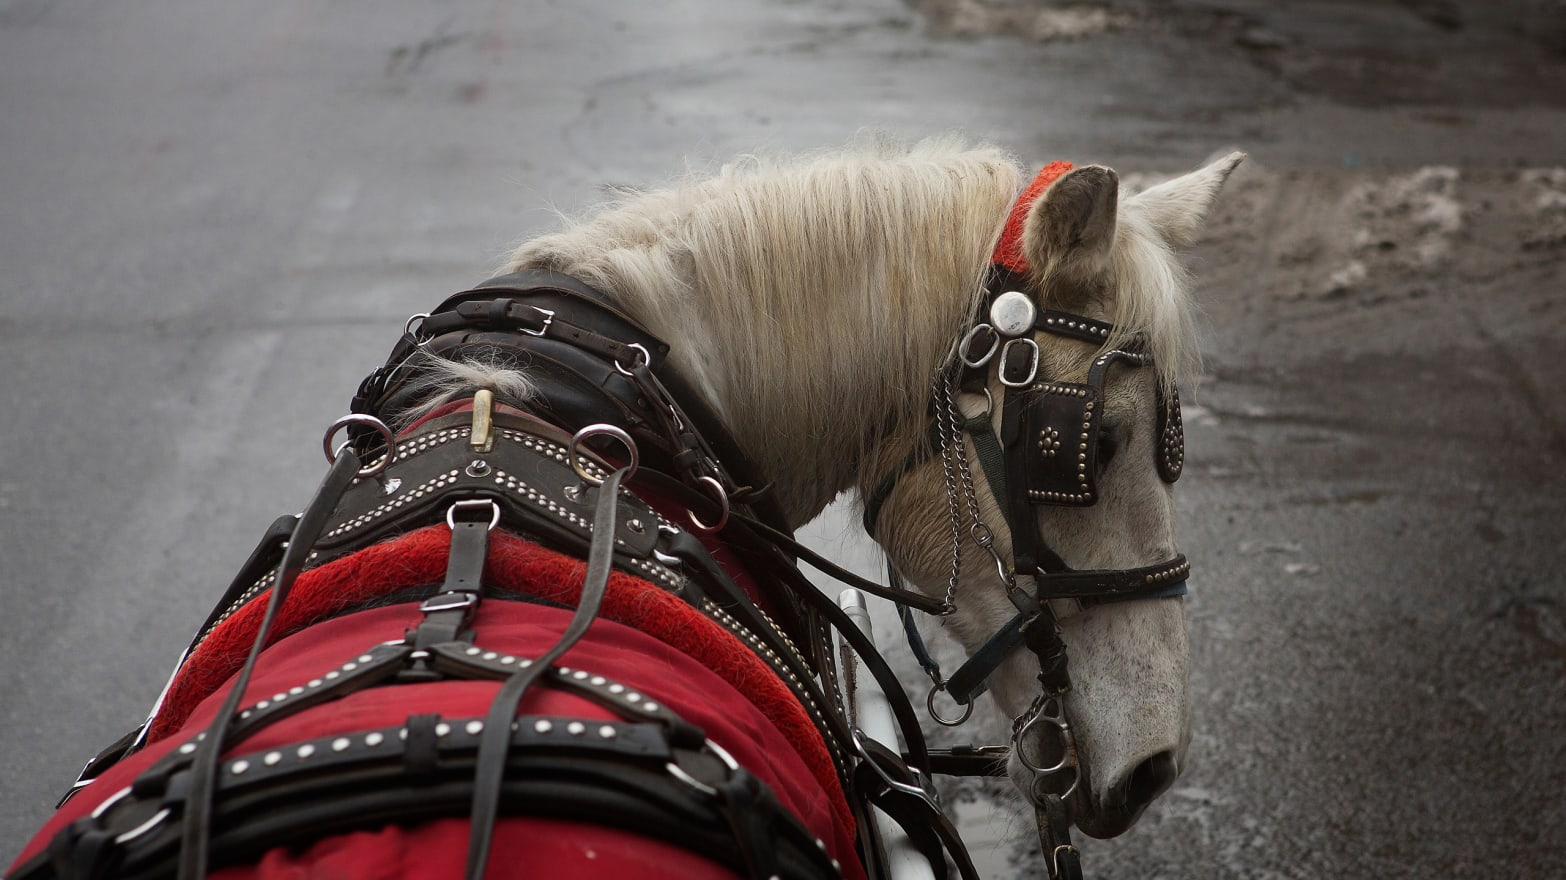 Central Park's Carriages Saved This Horse